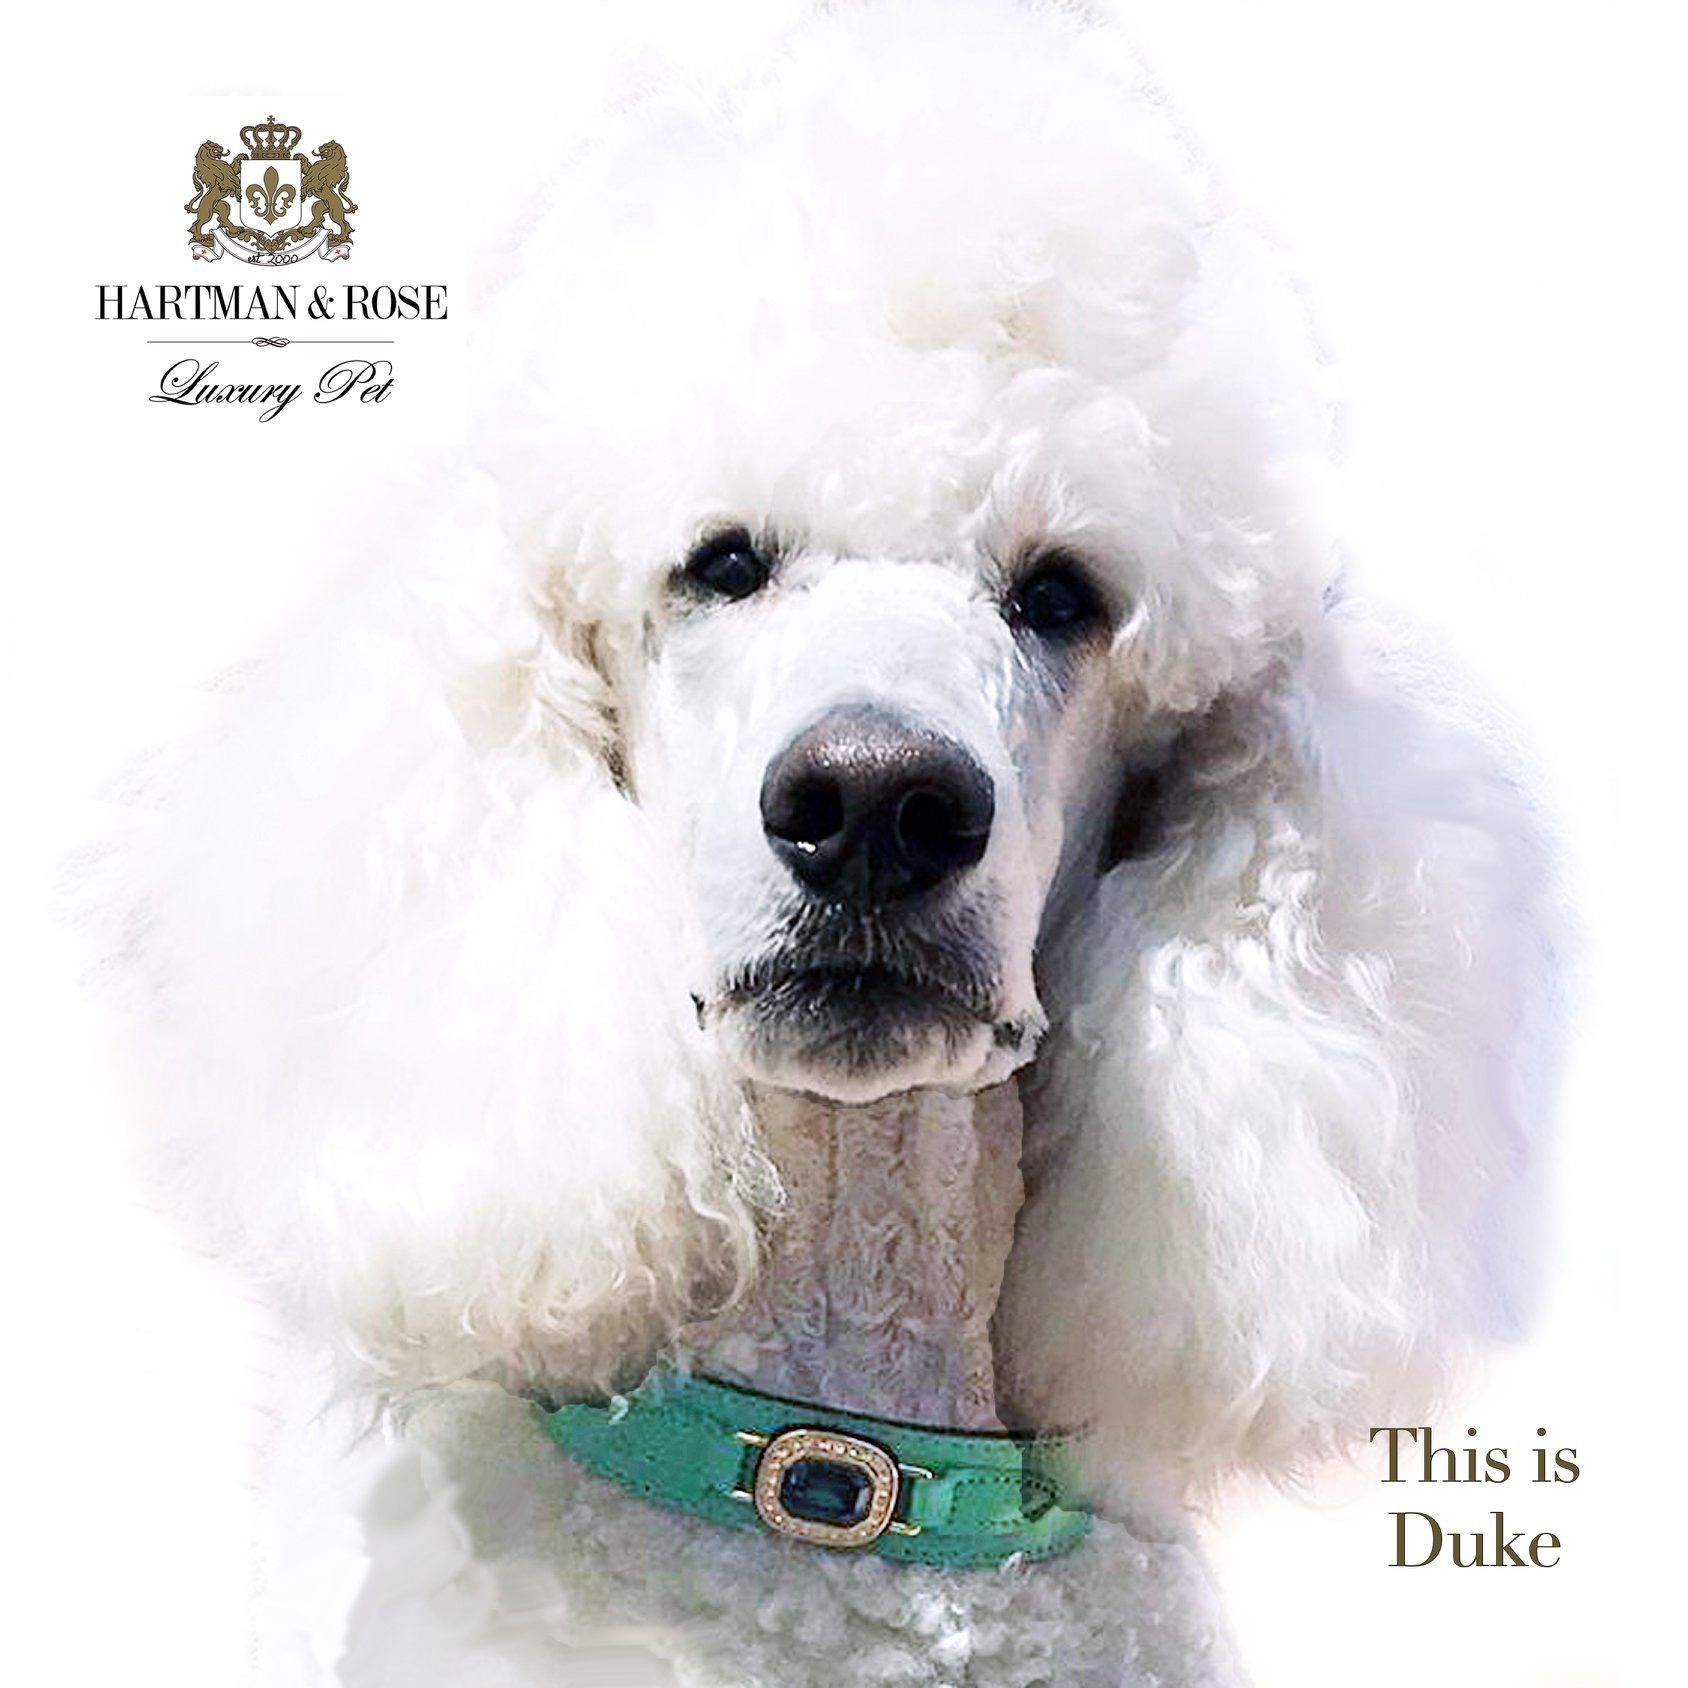 Only 32 Days until Christmas. Duke knows that means that holiday shopping is here. SAVE 30% use code: HOLIDAYSAVINGS Handsome Duke the Standard Poodle is wearing the Haute Couture Octagon collar in Kelly Green, Emerald & Gold. All collars & leads are custom made to order. @hartmanandrose #hartmanandrose @duke_thepoodle